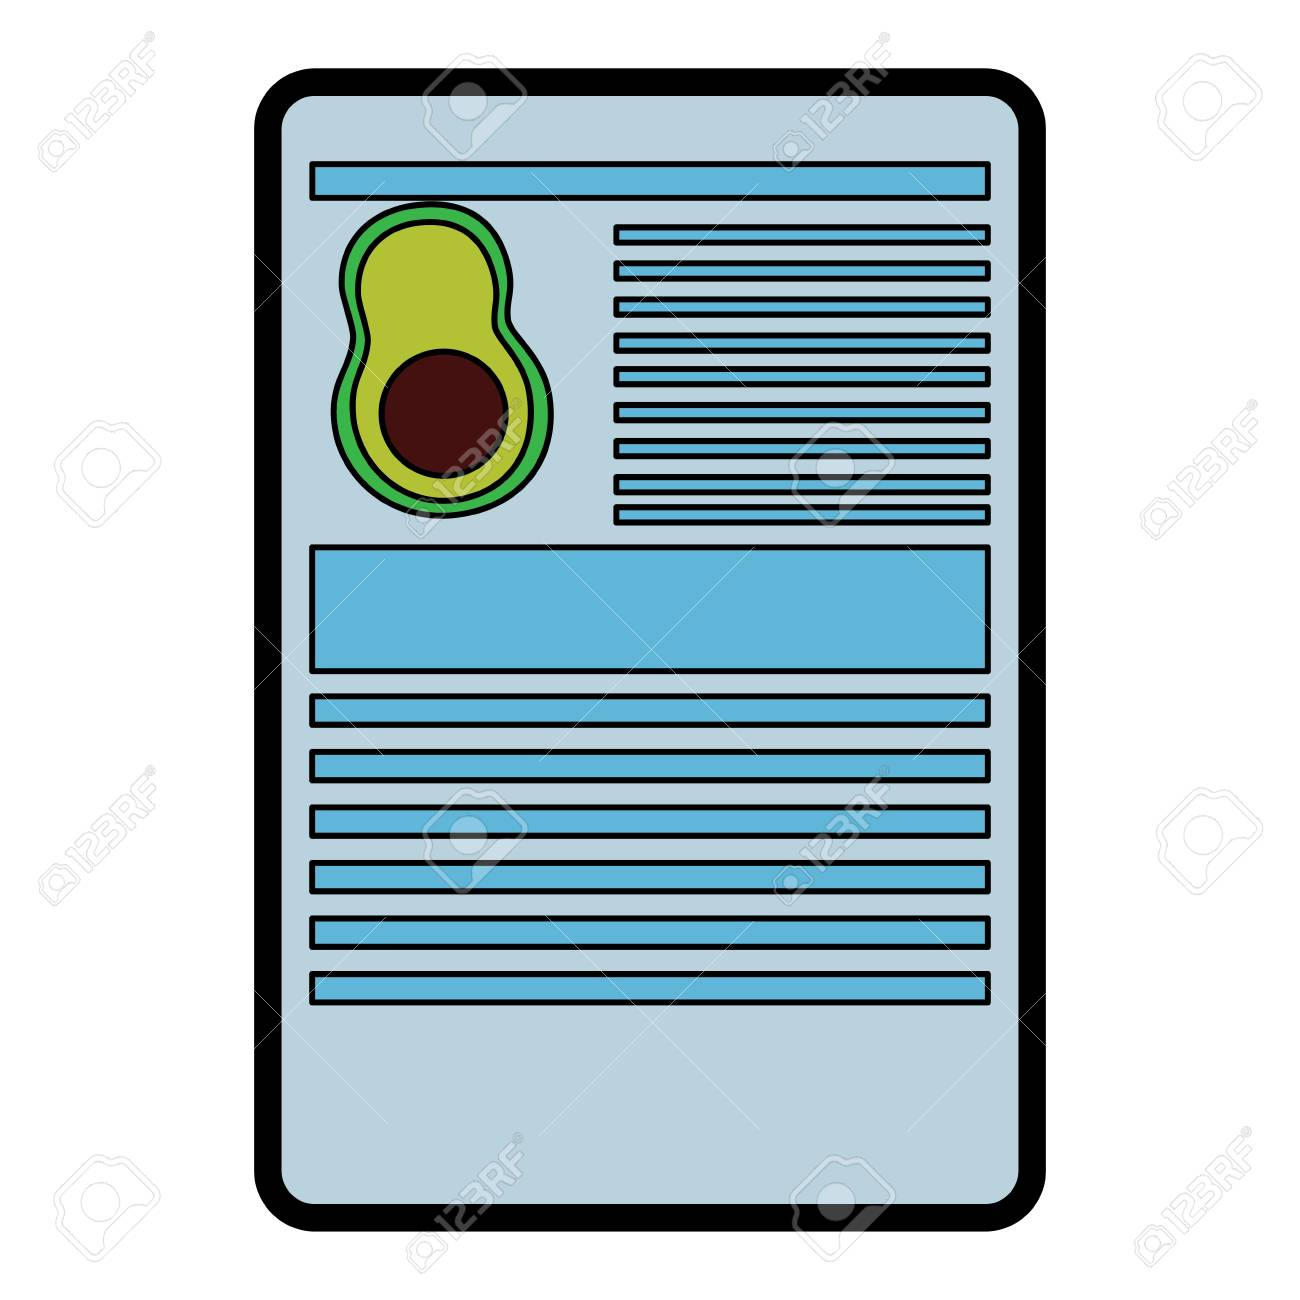 avocado nutrition facts label template vector illustration royalty